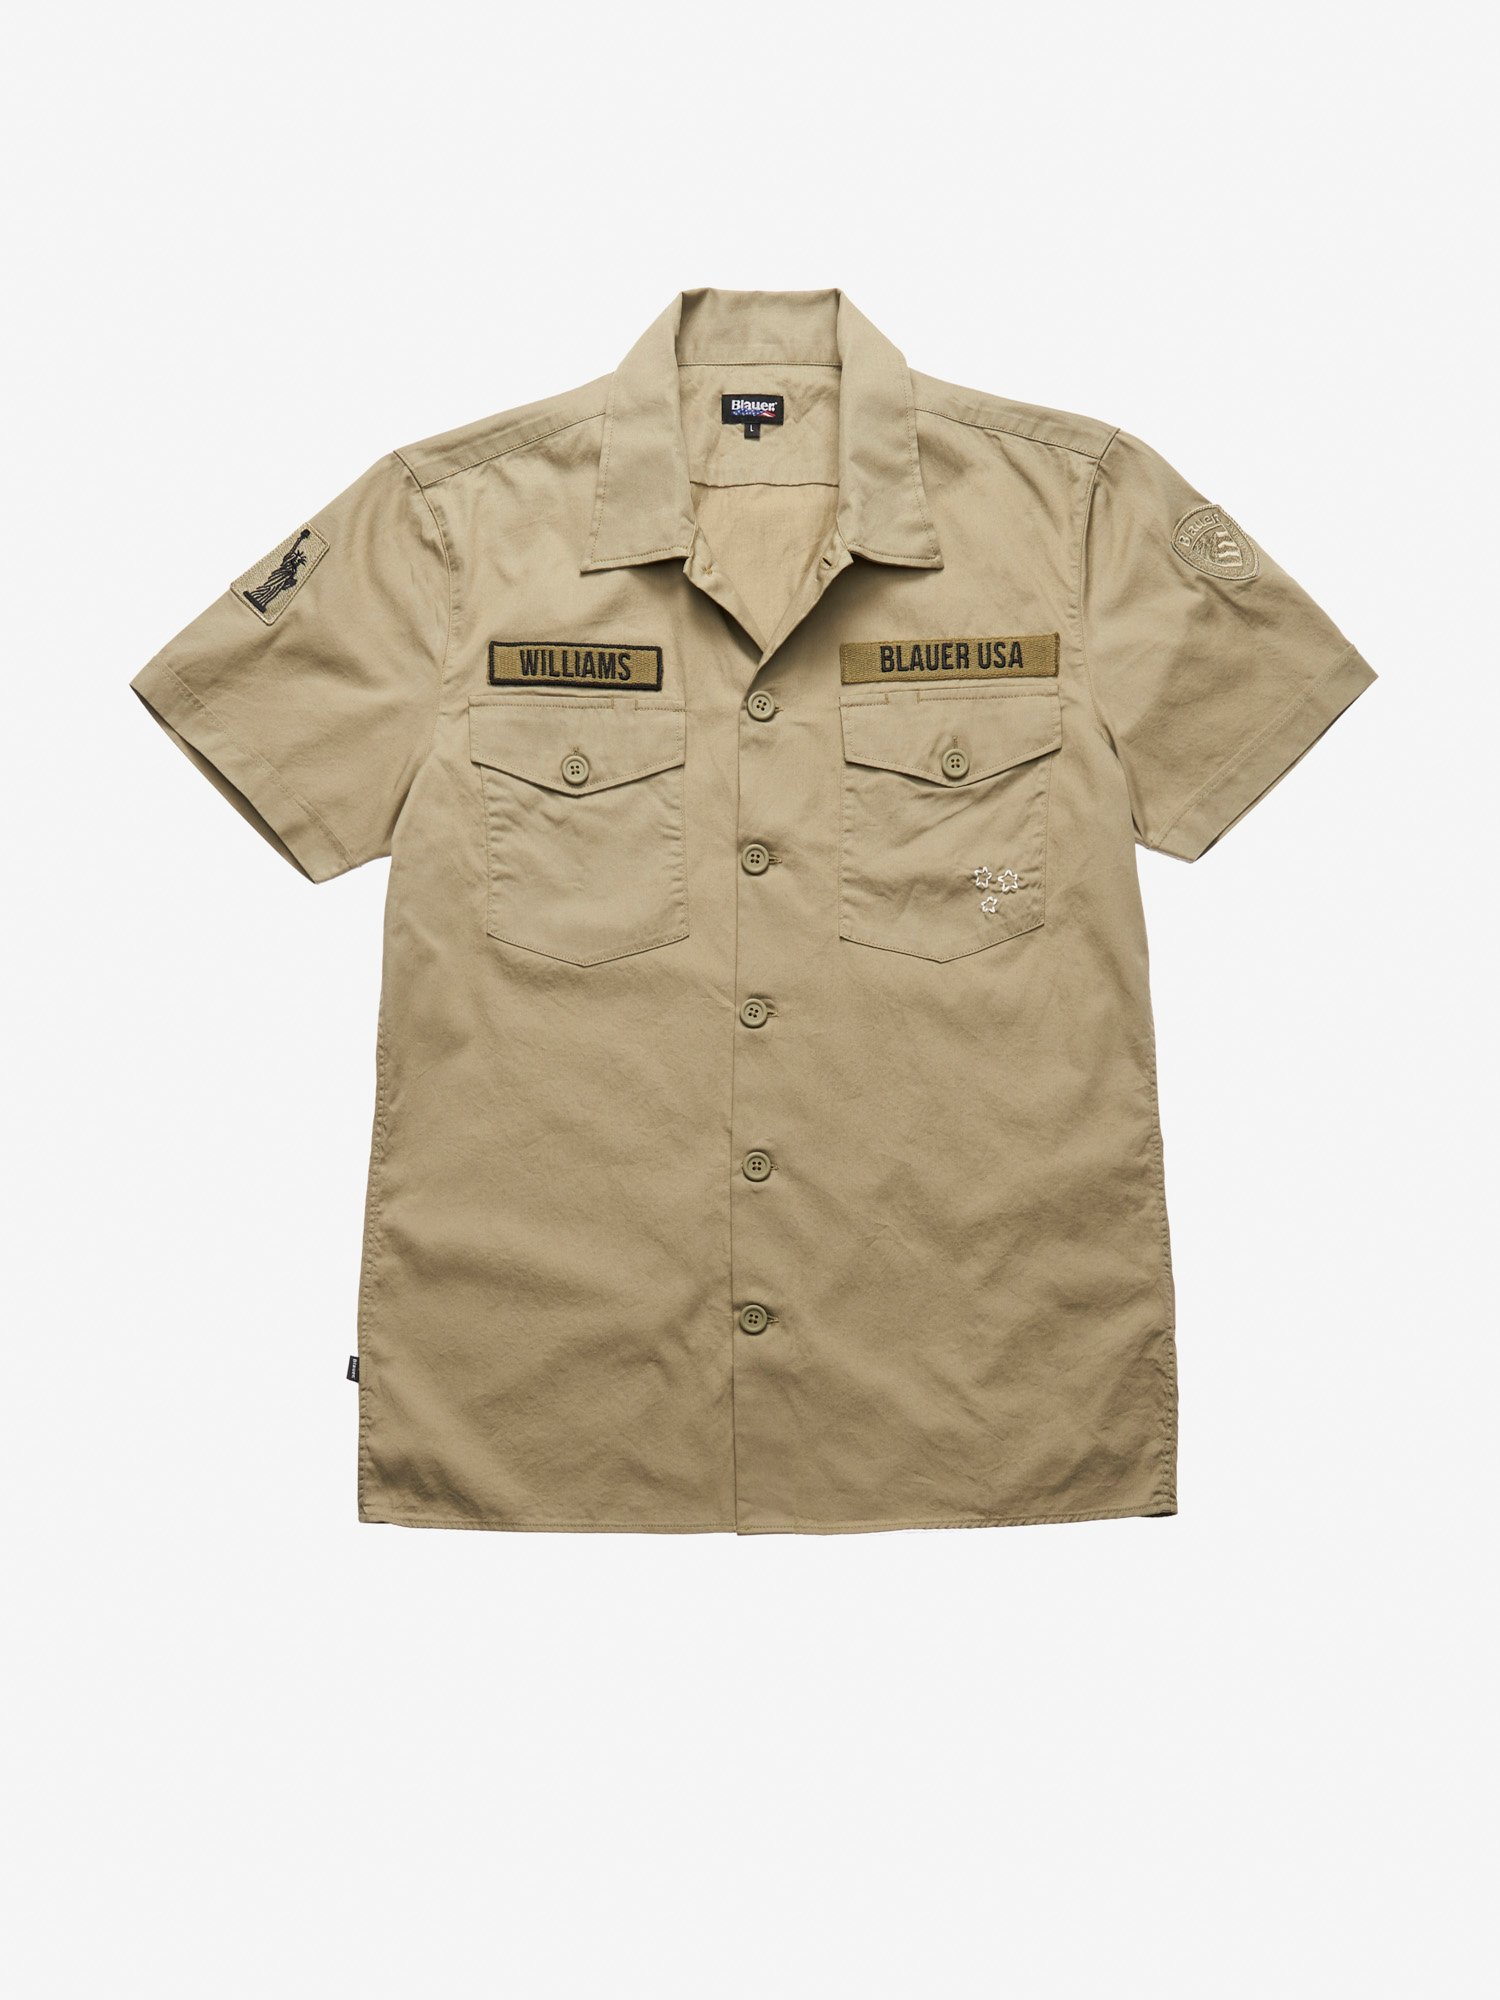 CHEMISE MILITARY MANCHES COURTES - Blauer